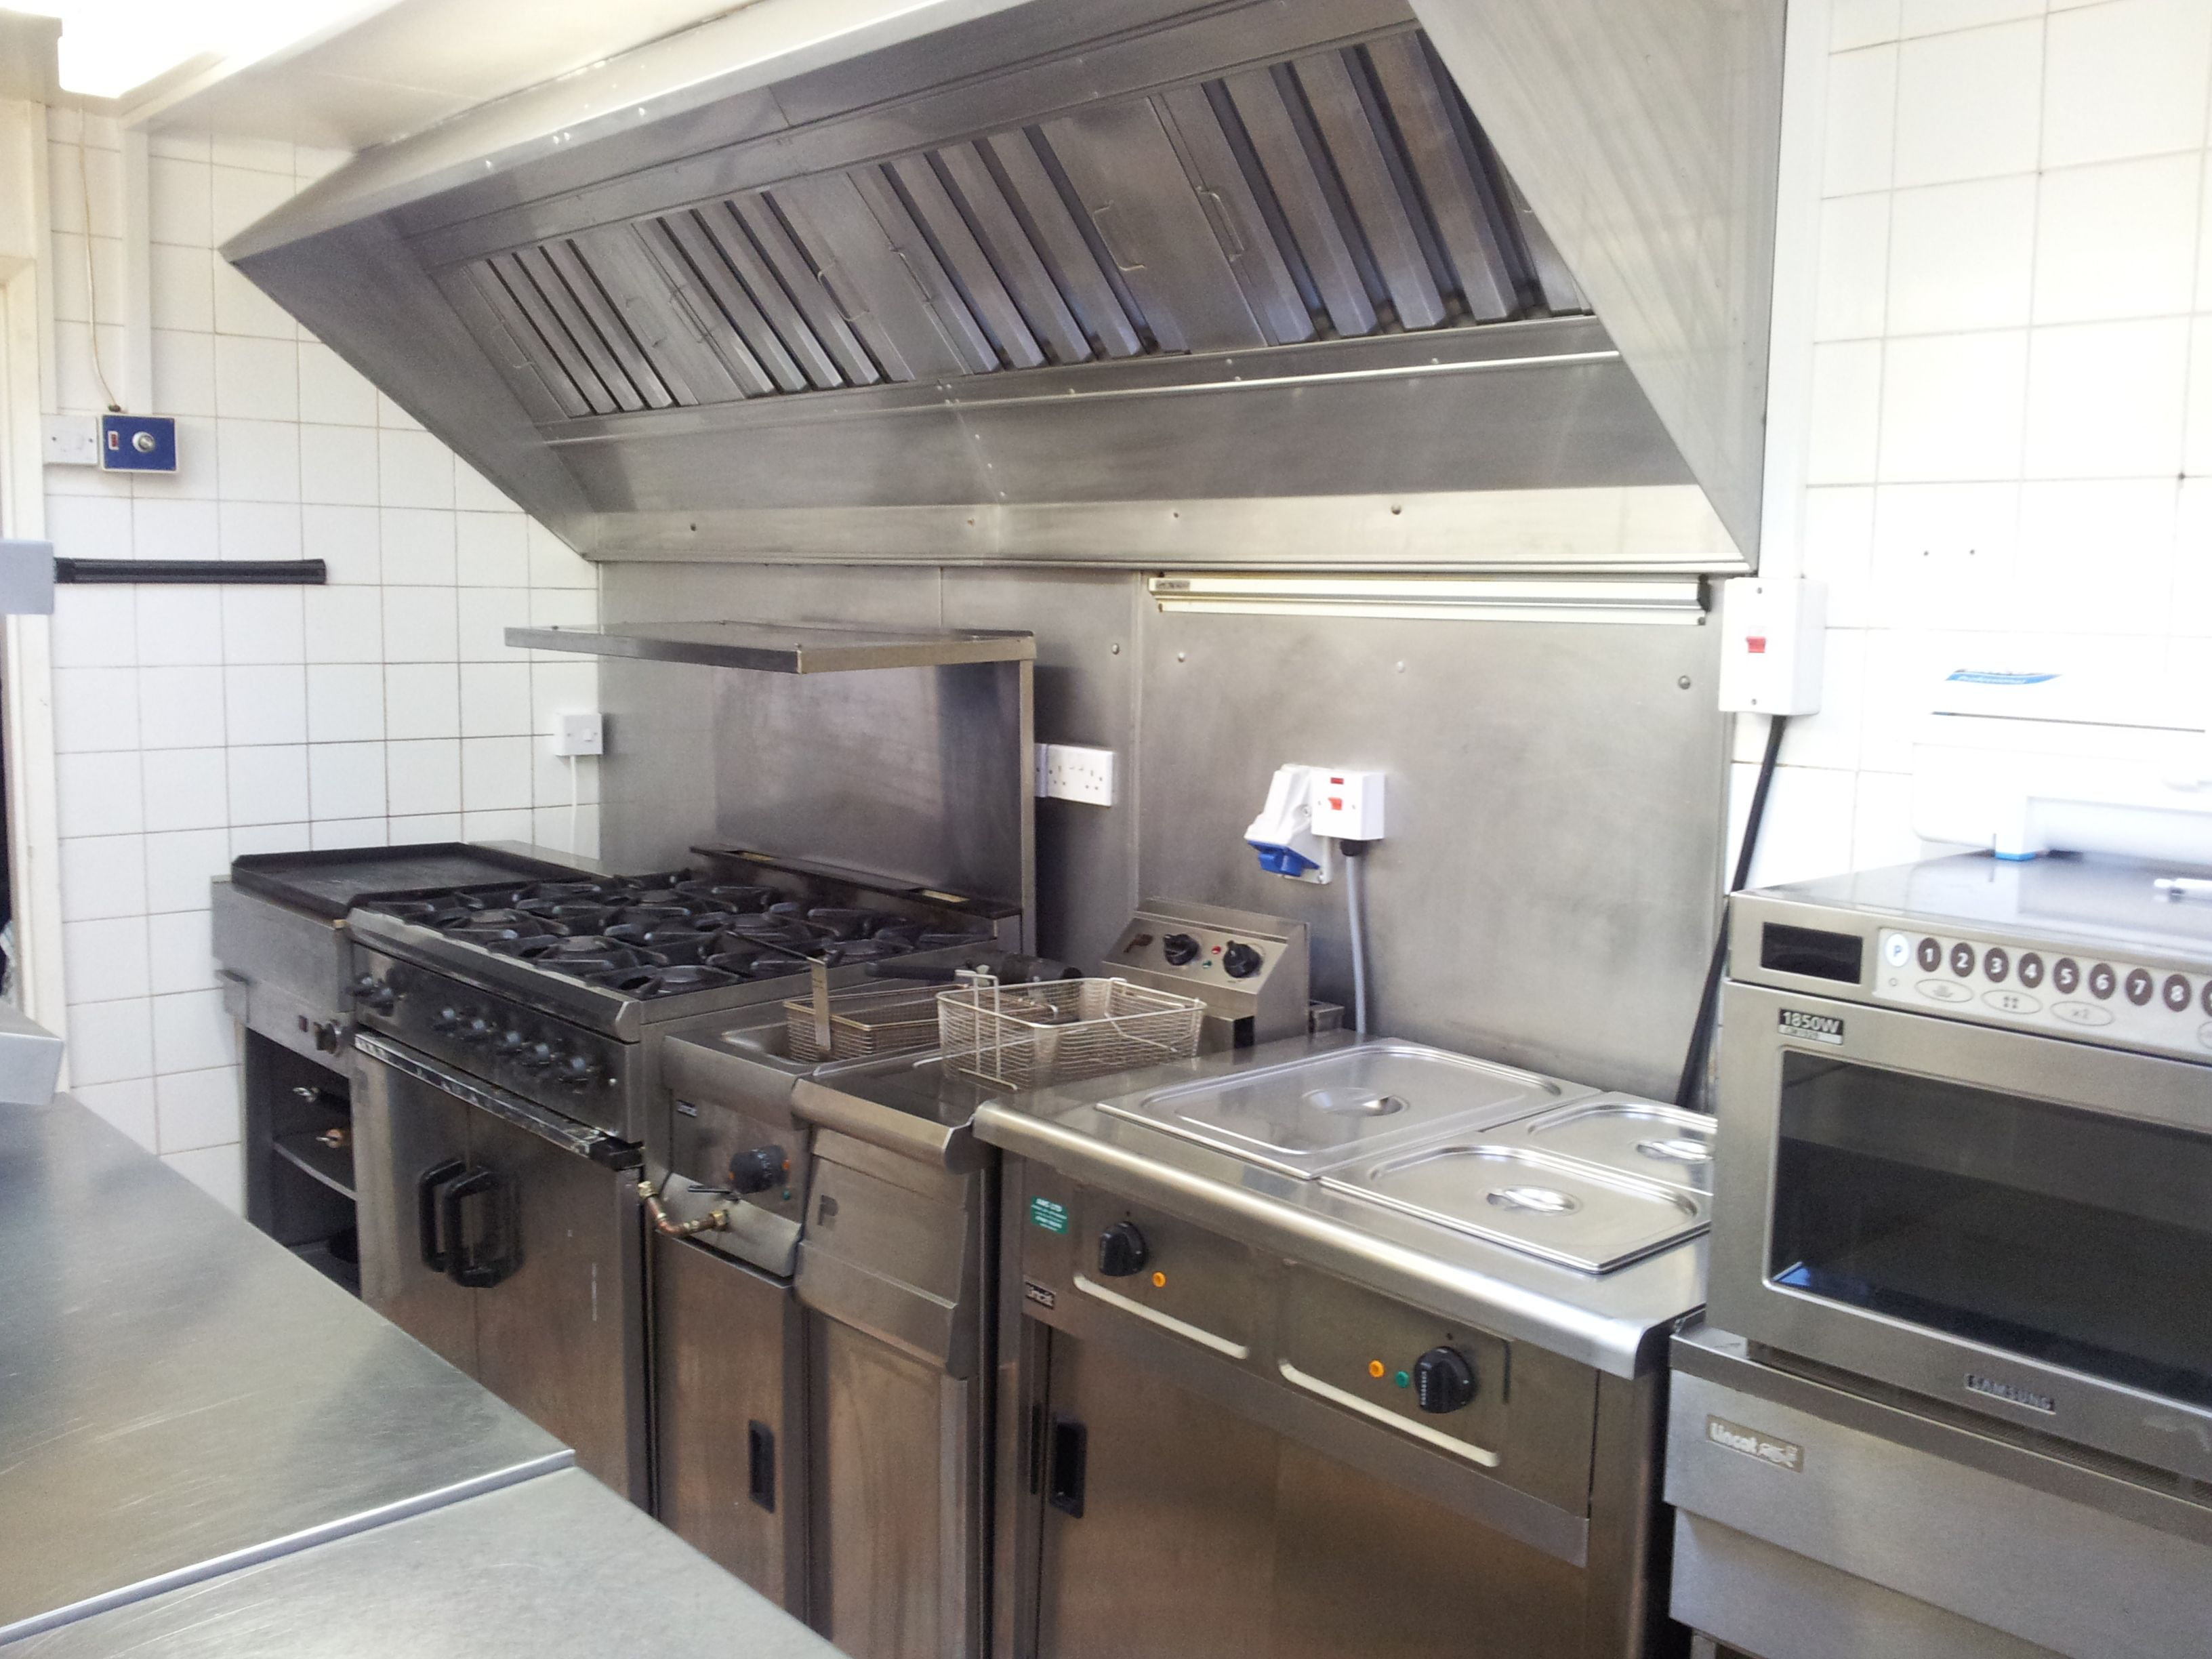 Restaurant Kitchen Equipment Layout new or used restaurant equipment for home cooks. great value